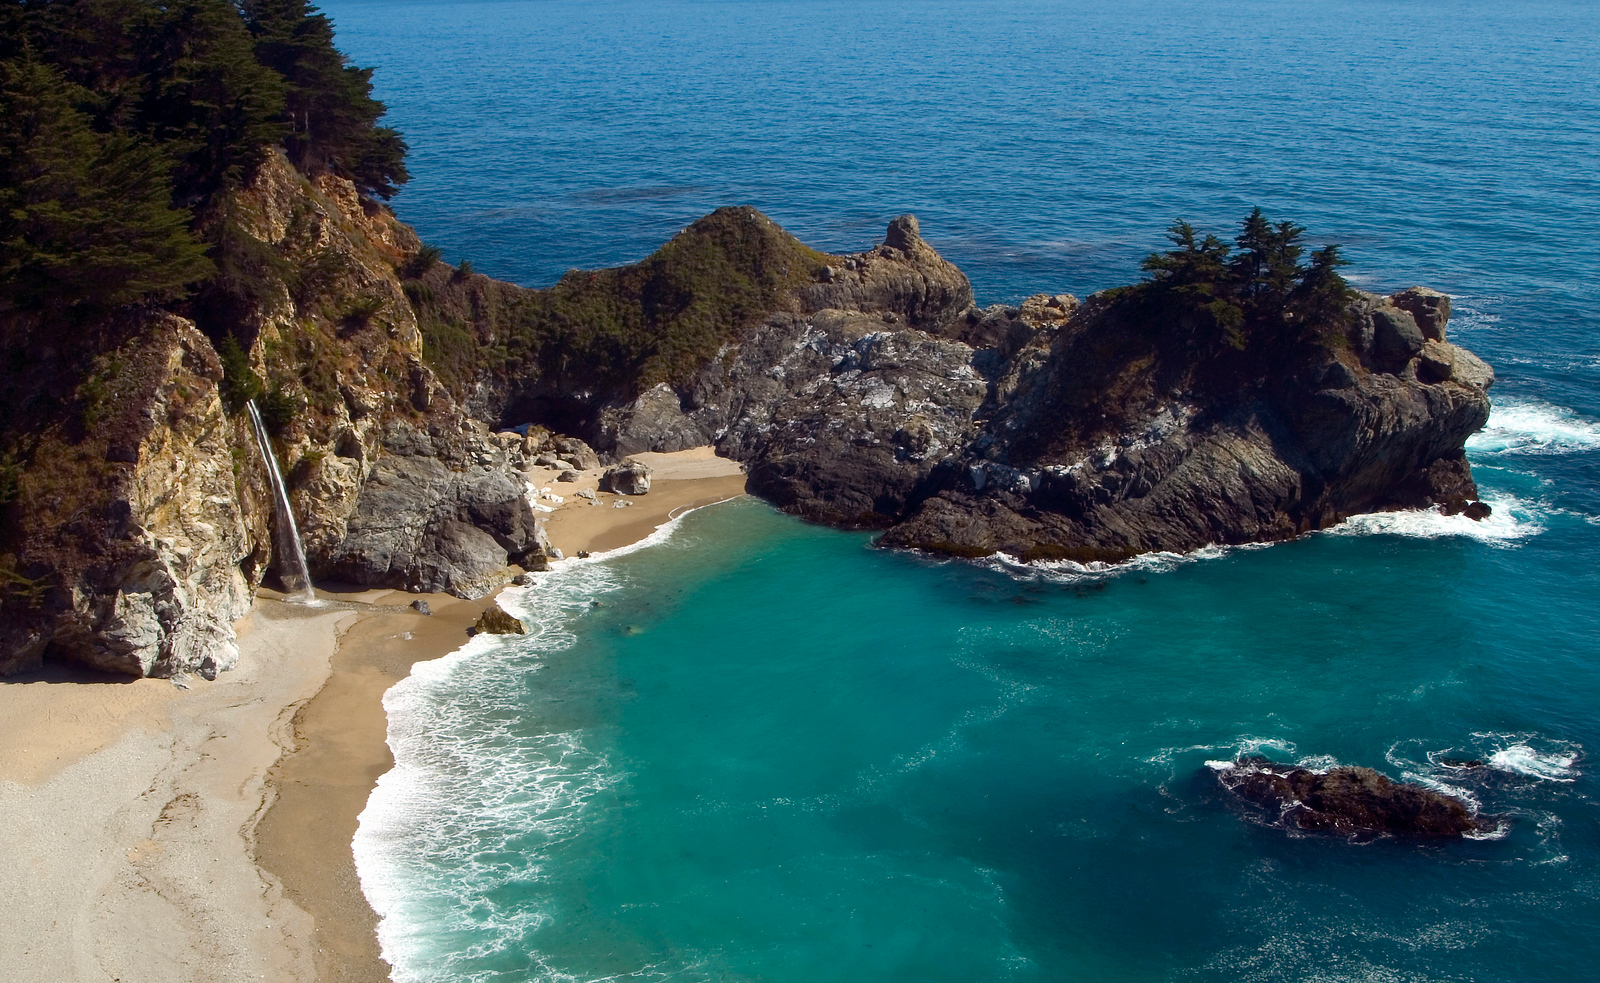 McWay Falls at Julia Pfeiffer State Park, Big Sur